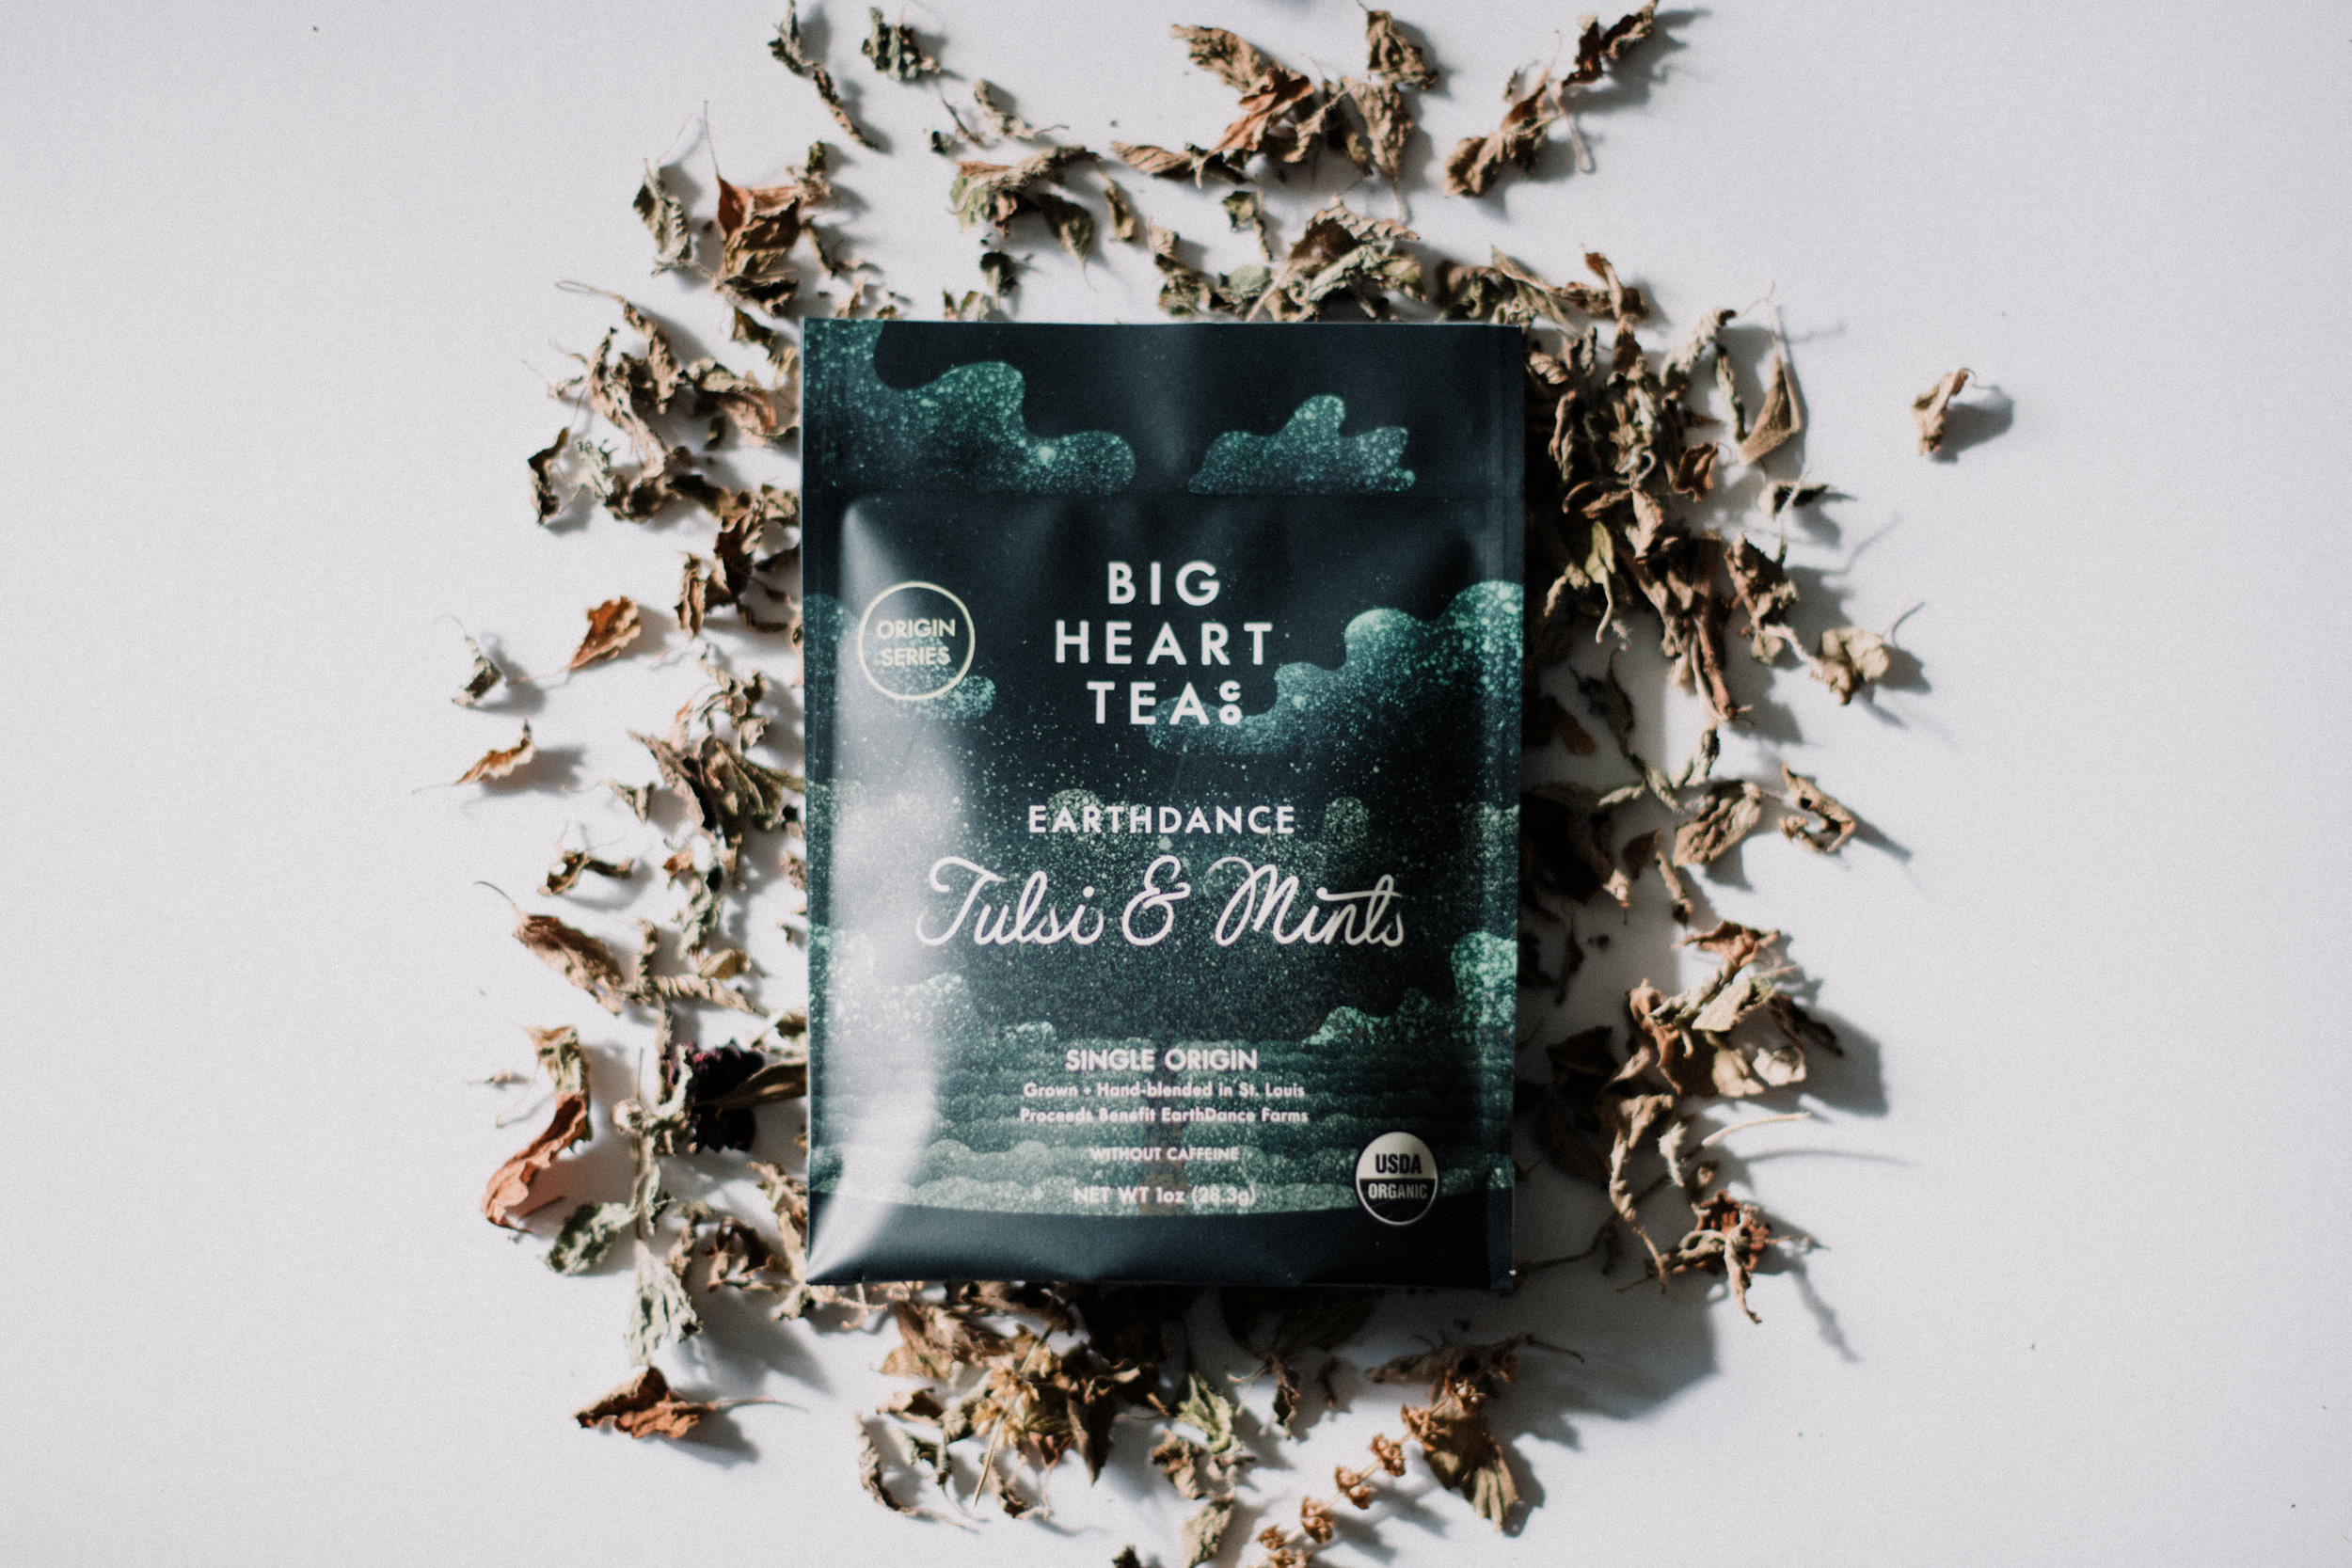 Origin Series - Introducing directly-sourced herbs + teas from farms that pass our rigorous standards for quality, ethics in labor, and agricultural responsibility.